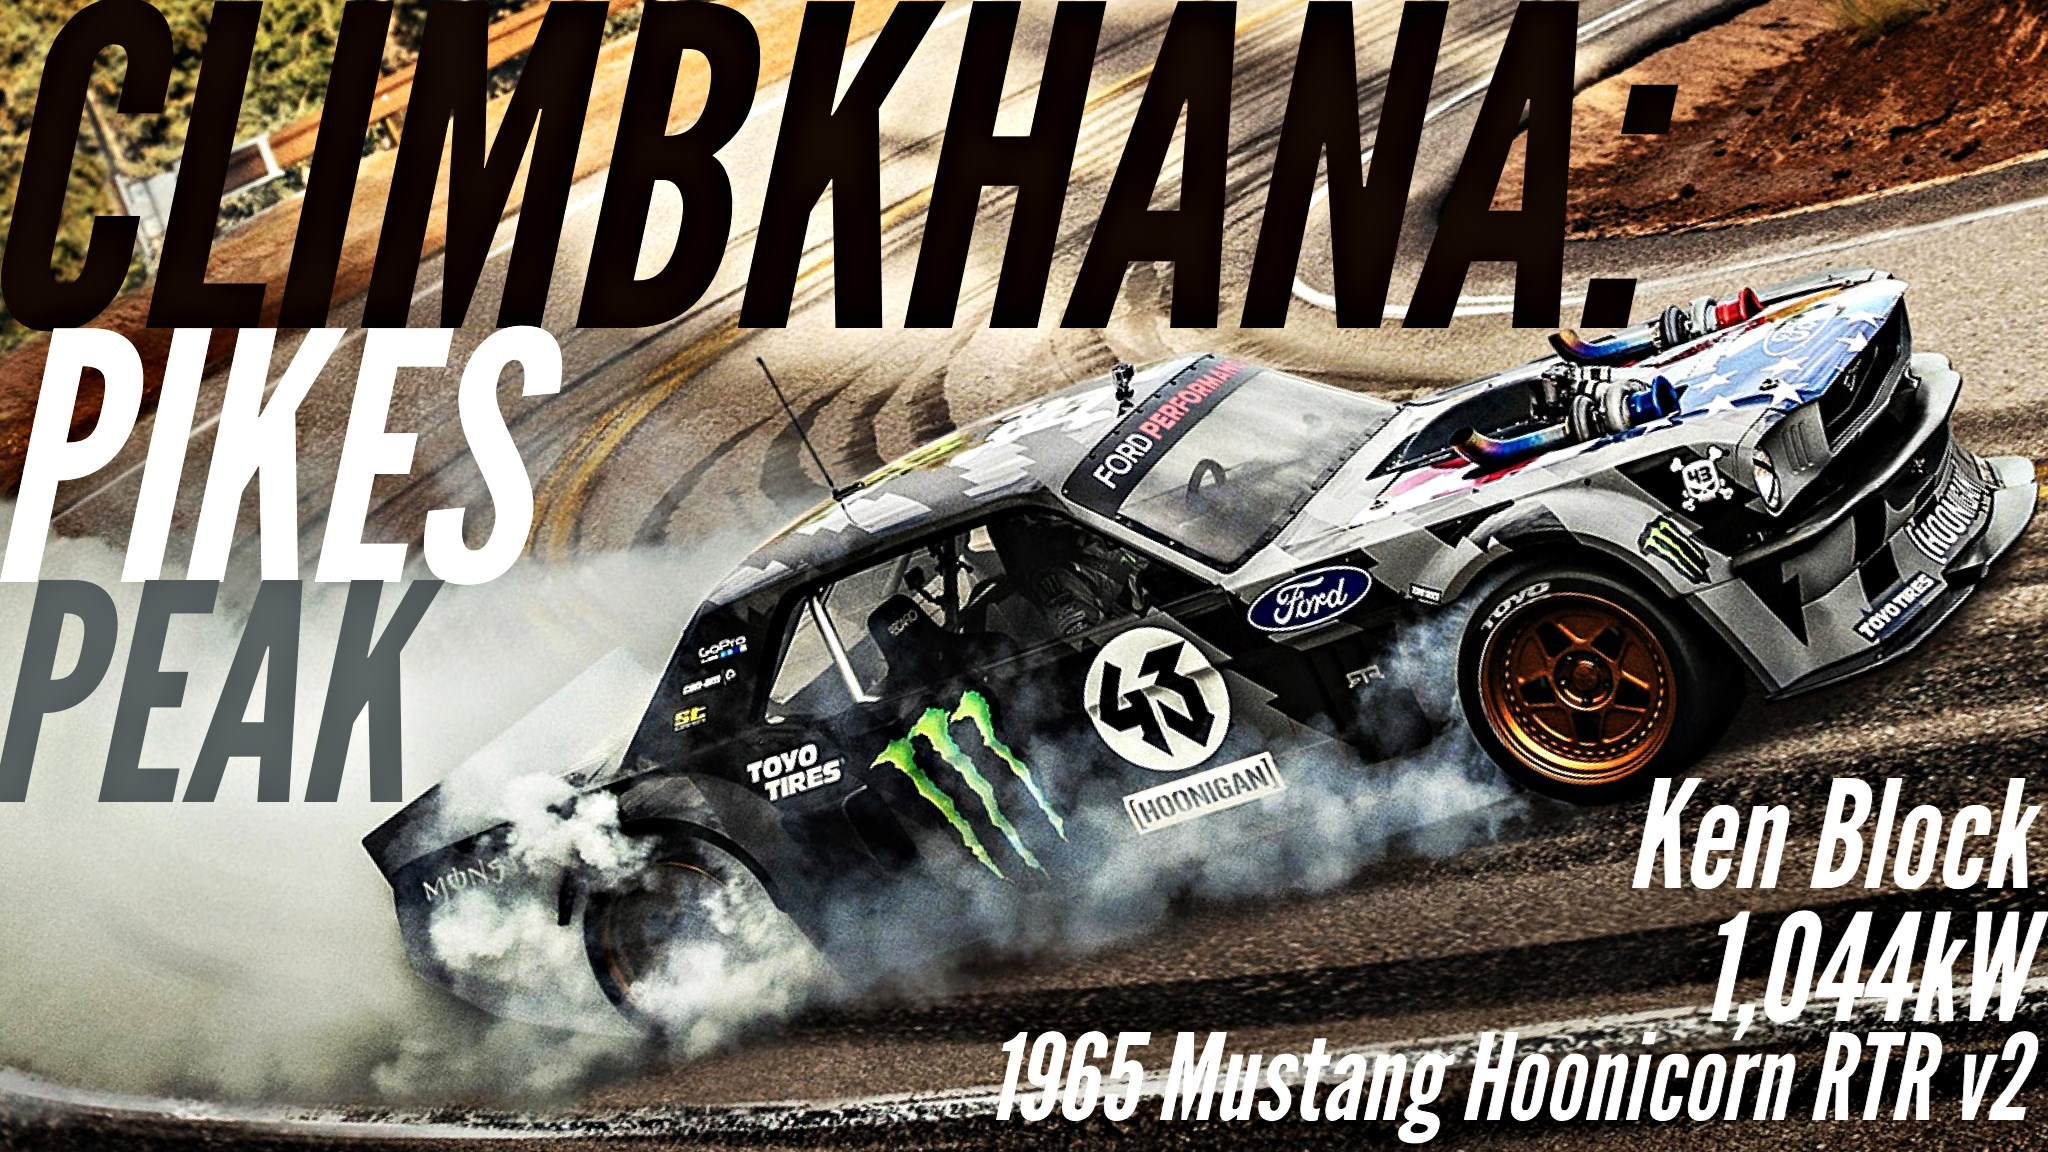 Climbkhana Is Here, A 1,044kW Sideways Thrill Ride To The Skies